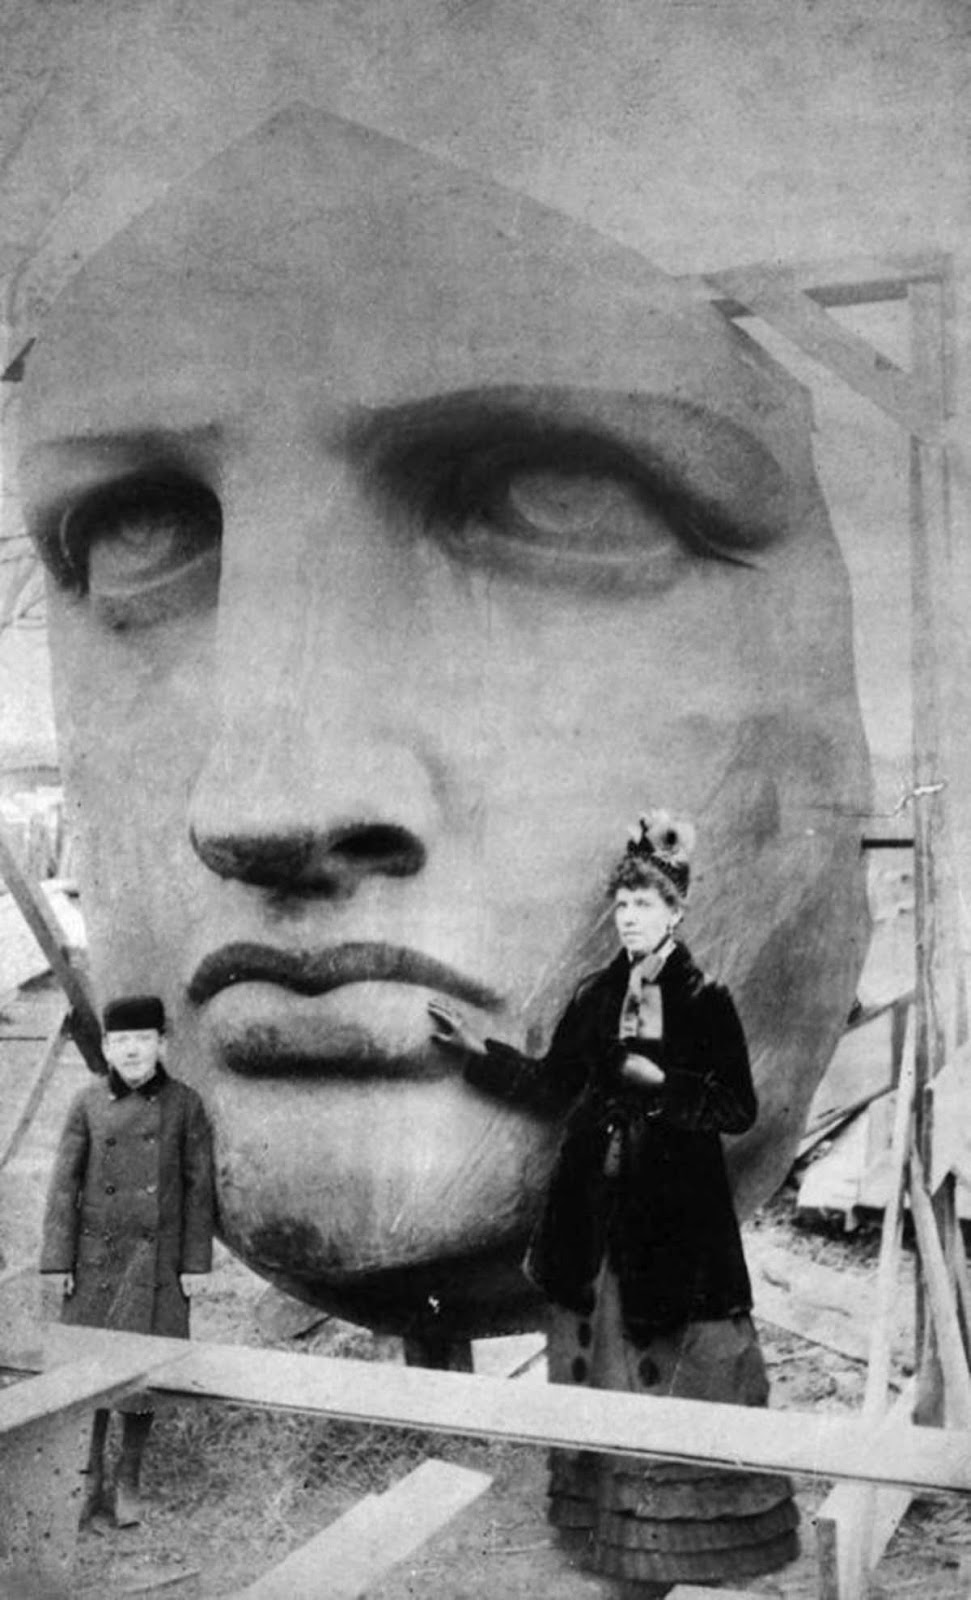 Unpacking of the head of the Statue of Liberty, which was delivered on June 17, 1885.